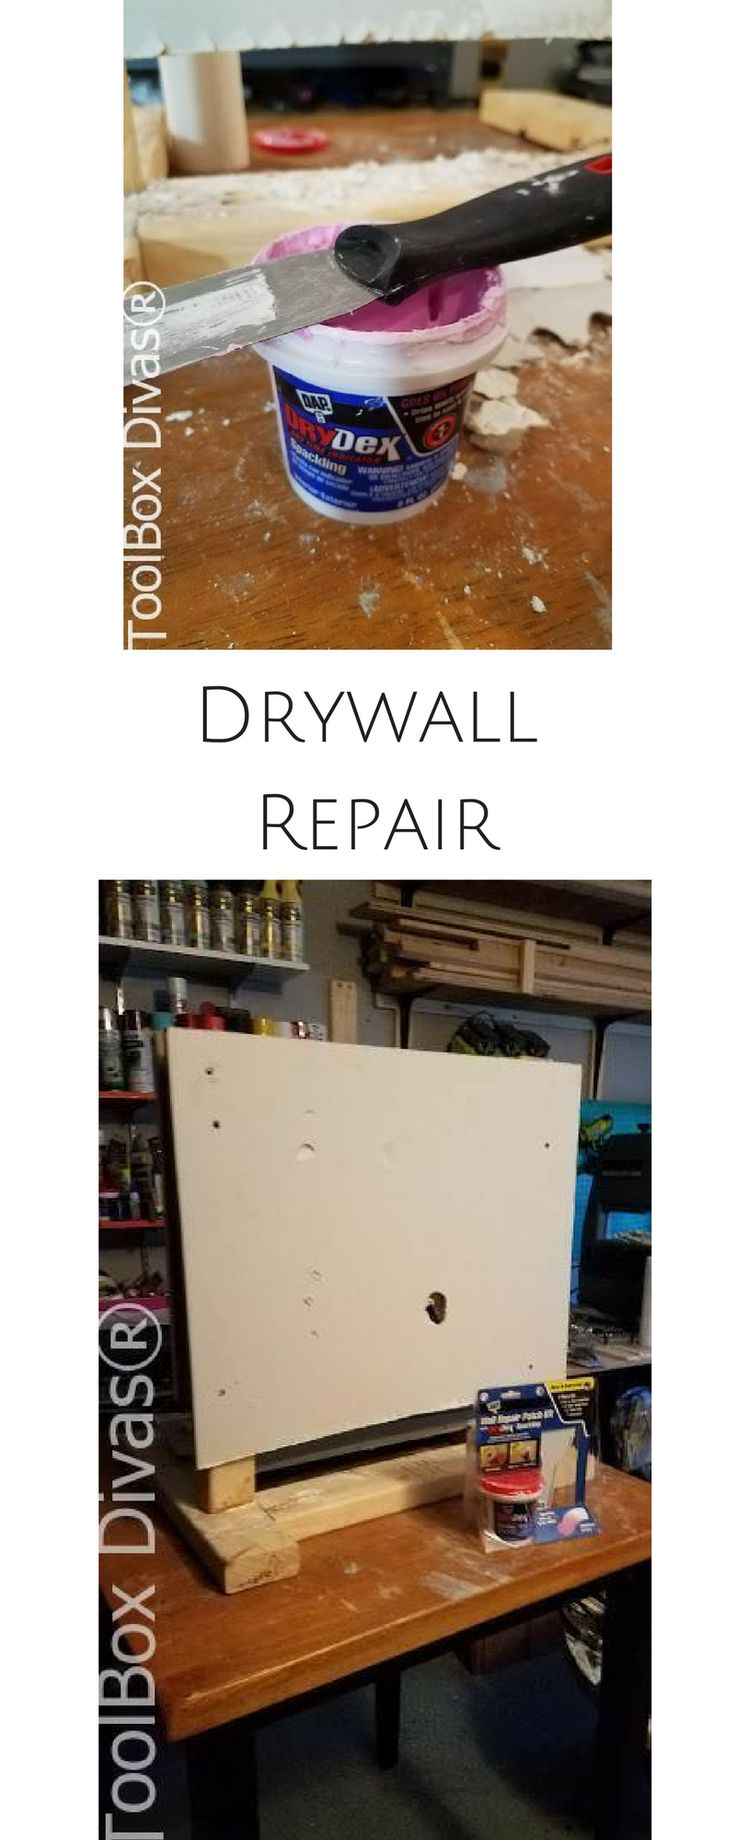 Easy Drywall repair. Repair a hole, big or small with this how to tutorial.  How to fix a hole in the wall.  #Homemaintenance #drywall #drywallrepair #Putty @ToolboxDivas